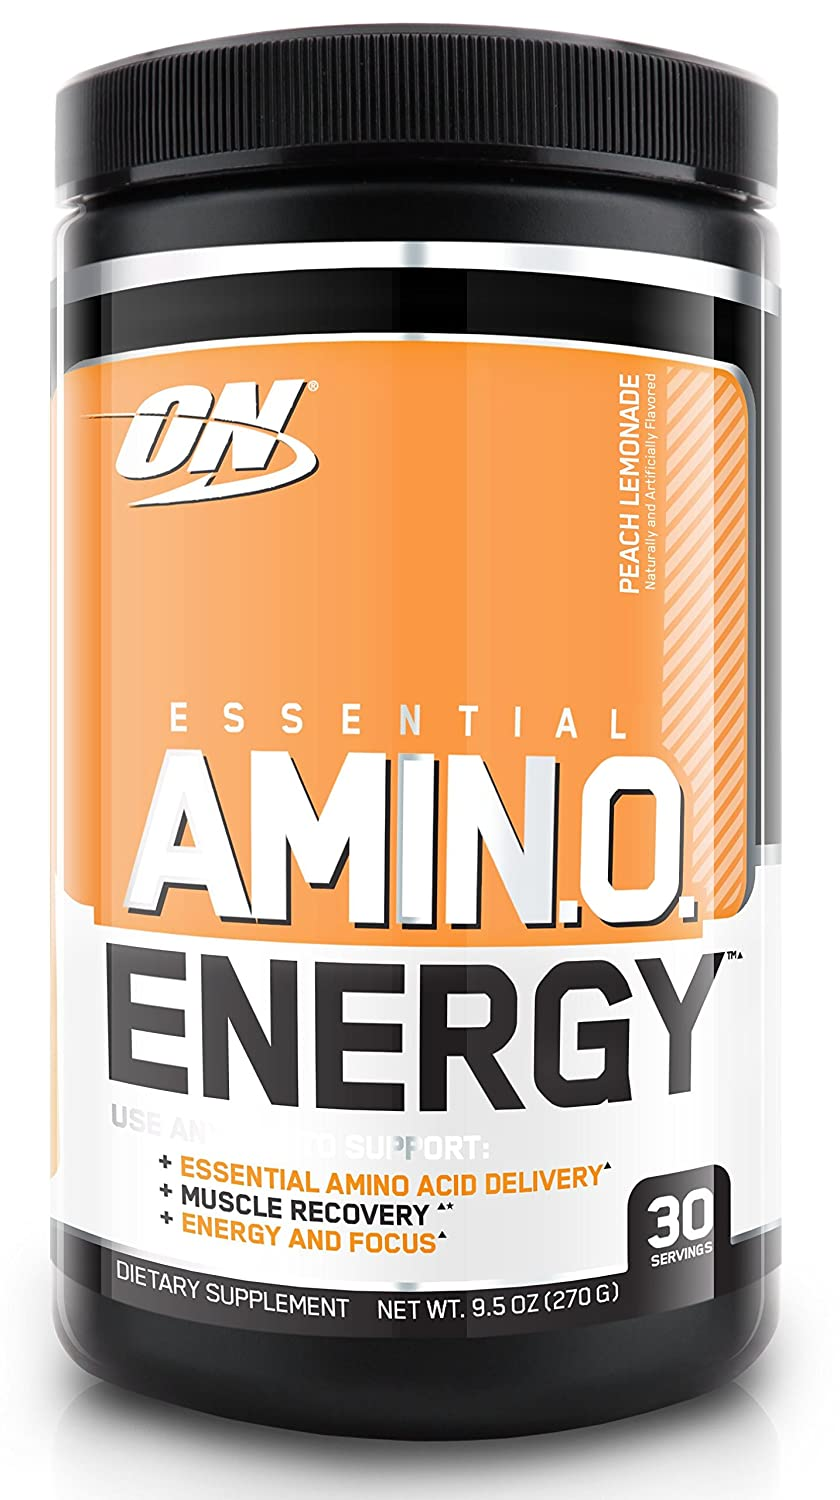 Top 8 Strongest Pre-Workout Supplements For High Energy.jpg